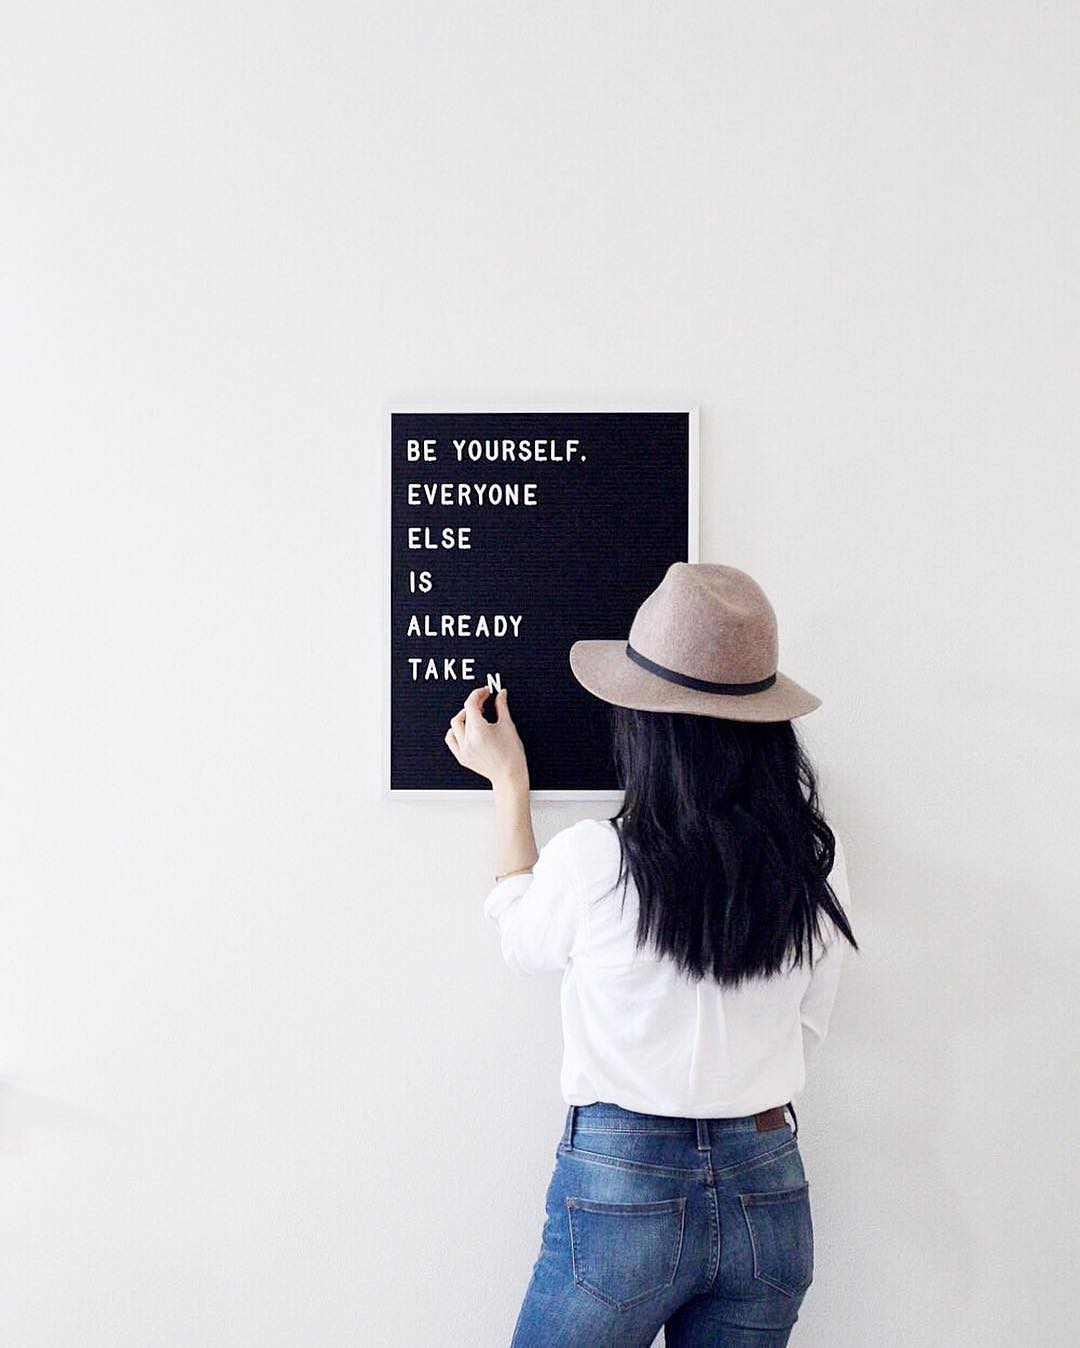 The Coolest Customizable Art: Felt Letter Boards and Black Light Boxes, plus where to buy them. (Be Yourself Letterboard Felt Sign)